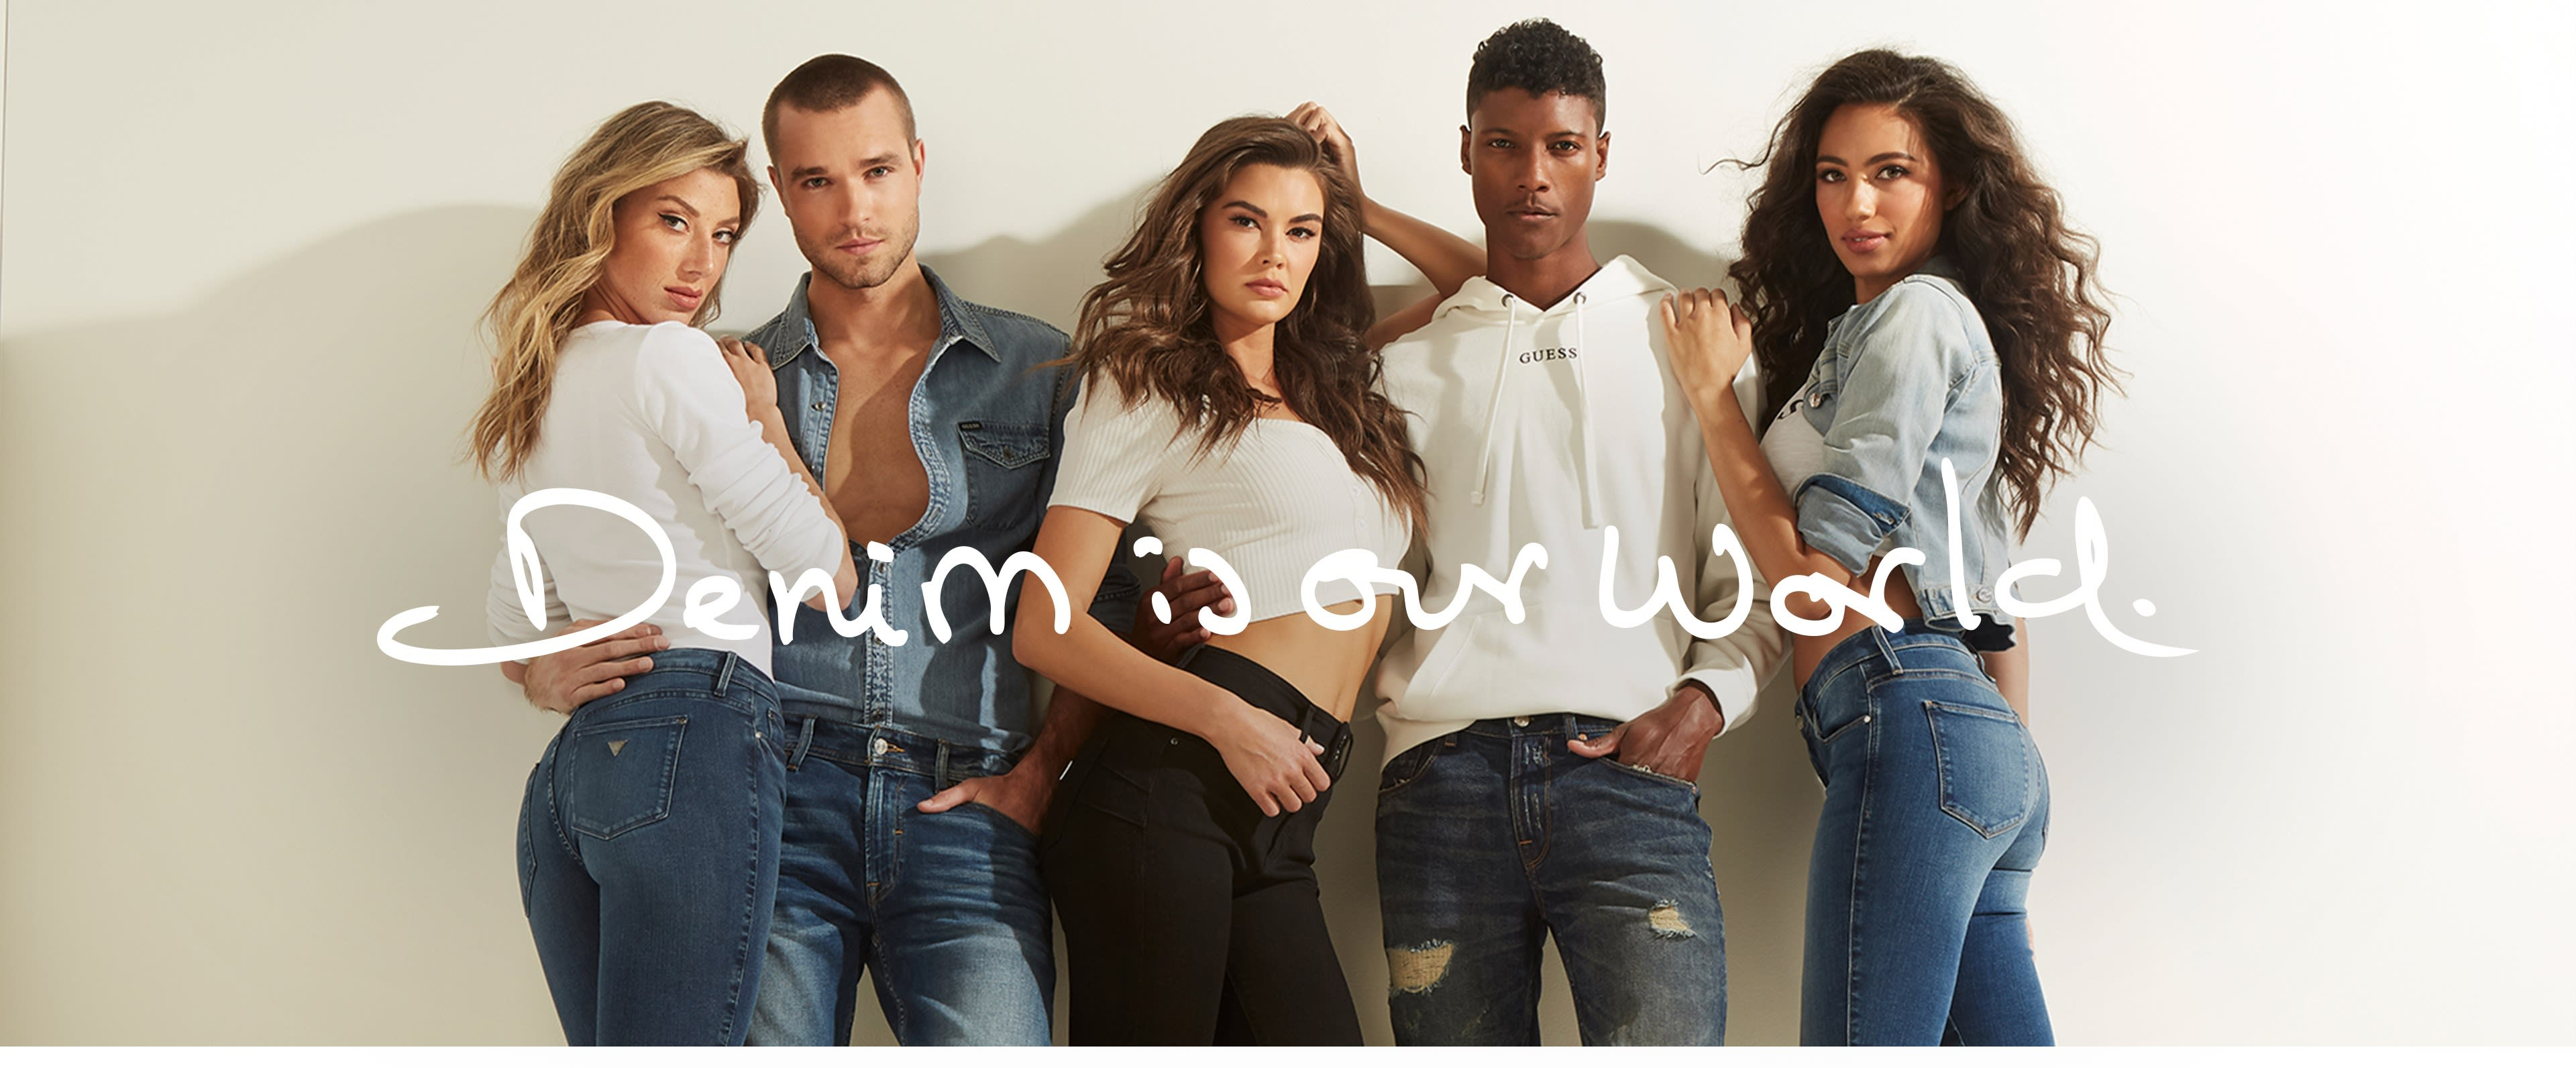 Denim for women and men